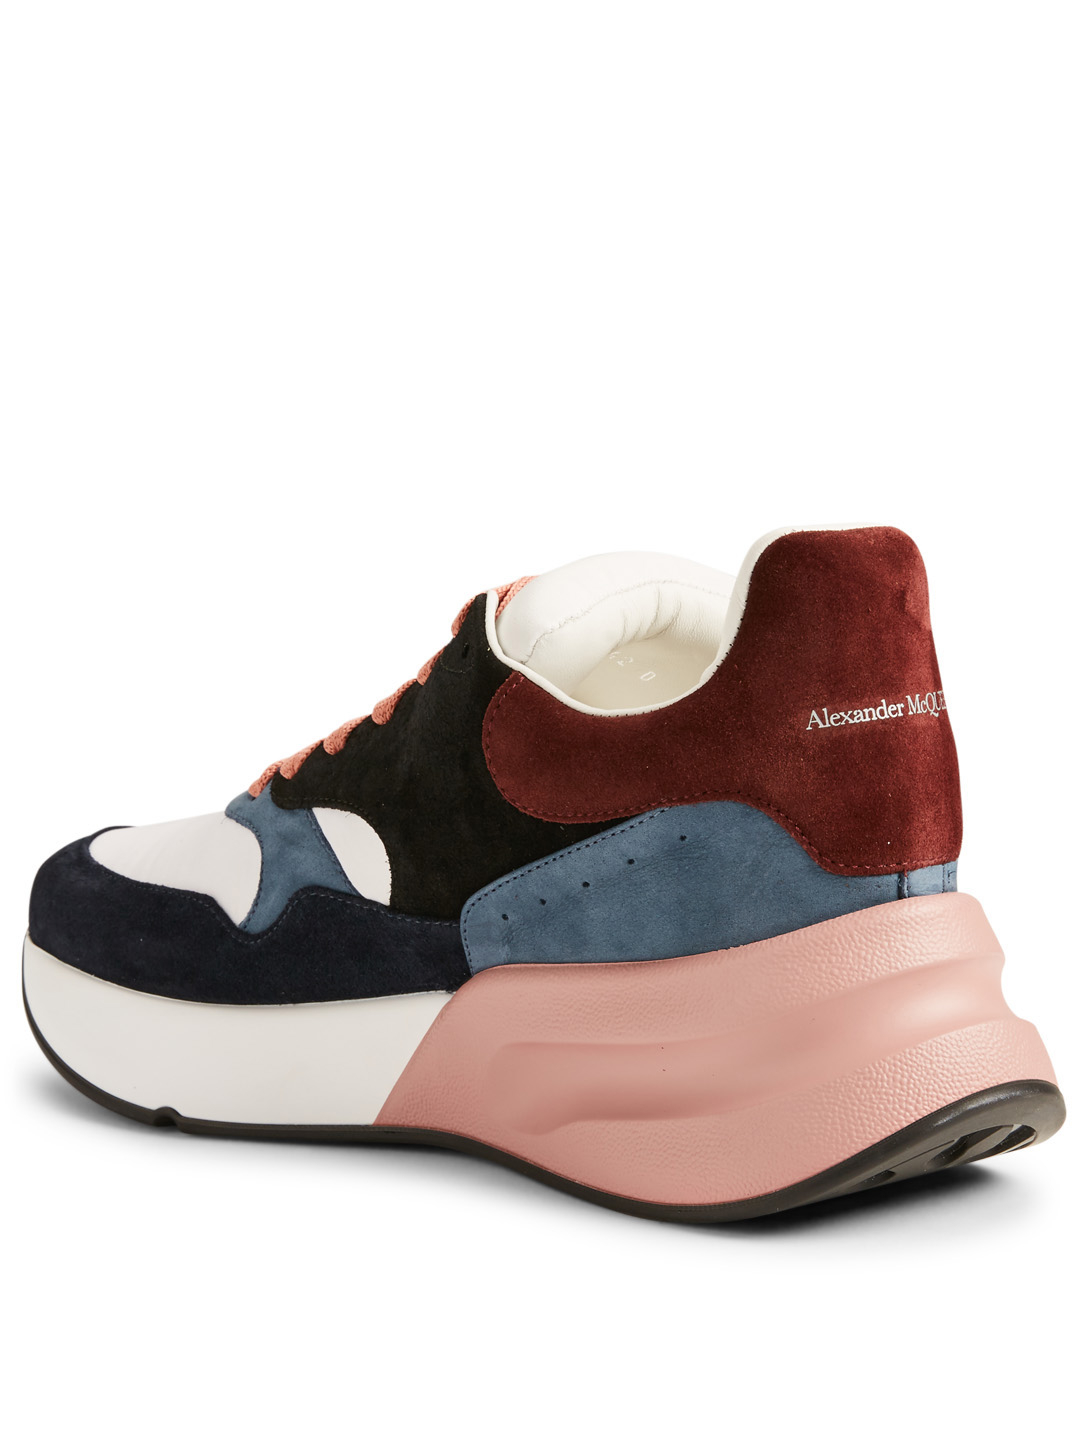 ALEXANDER MCQUEEN Oversized Leather Runner Sneakers Men's Pink